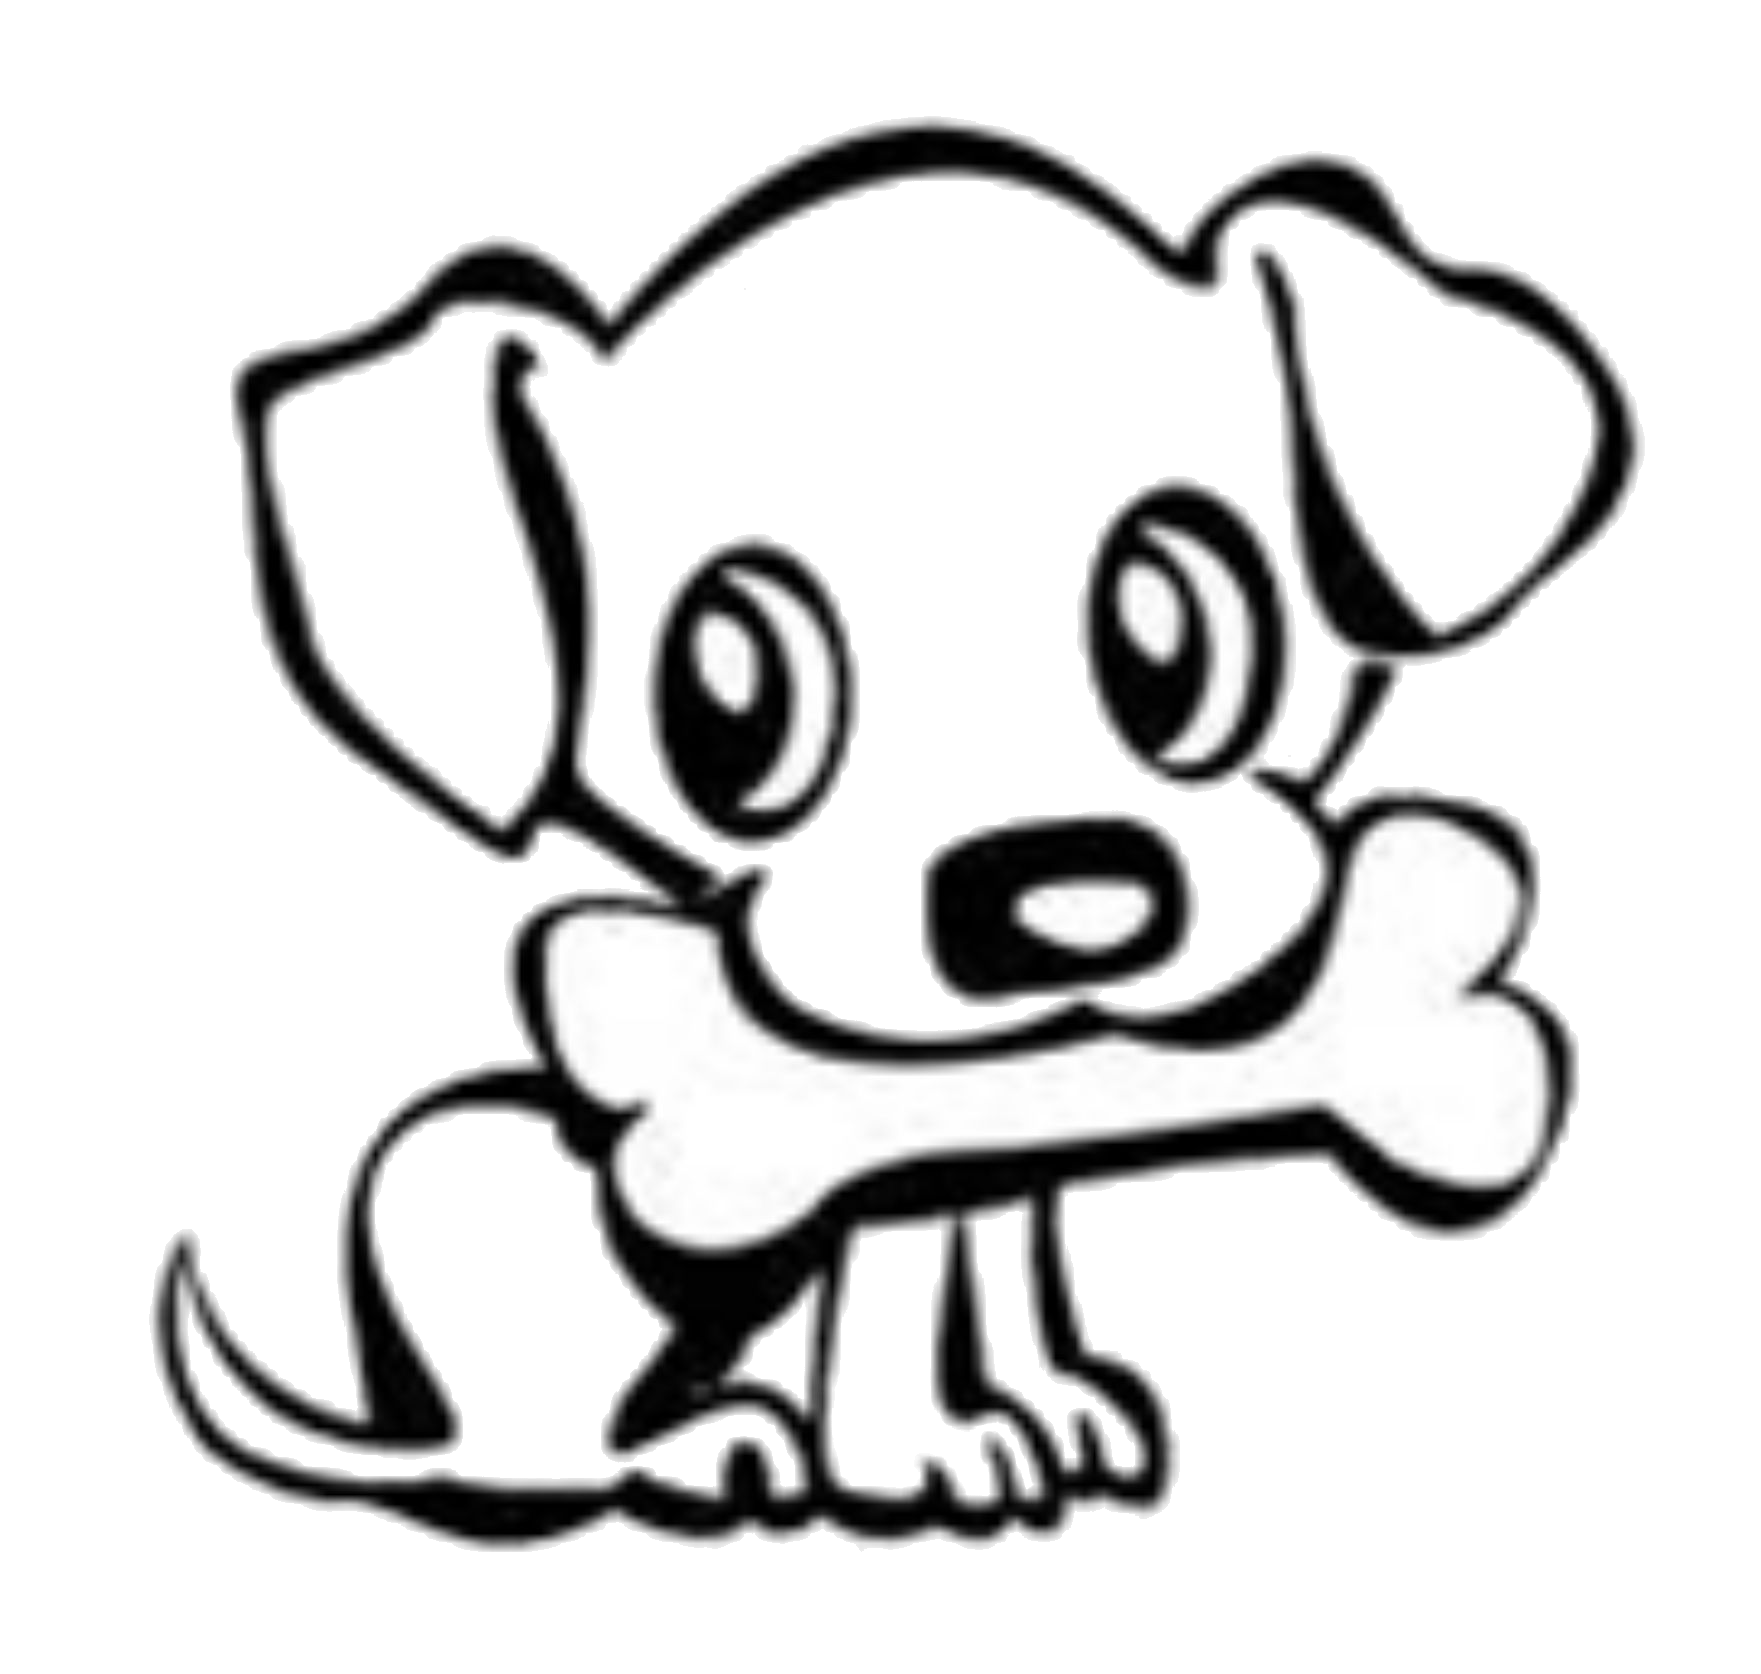 Dog with bone clipart graphic library download Dog Bone Drawings Group (59+) graphic library download